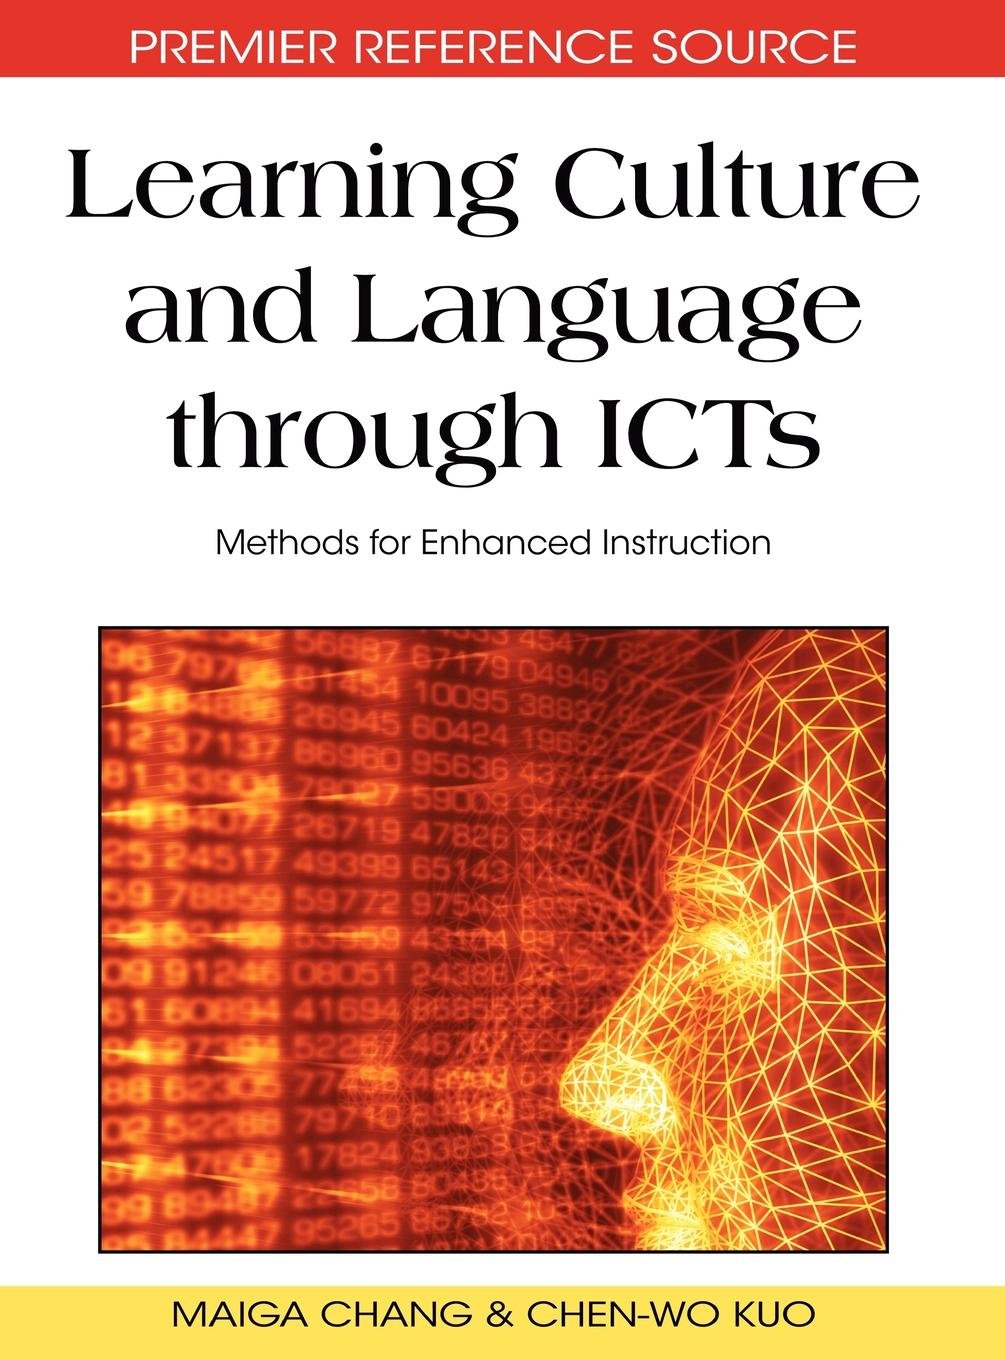 Learning Culture and Language through ICTs: Methods for Enhanced Instruction by Brand: IGI Global